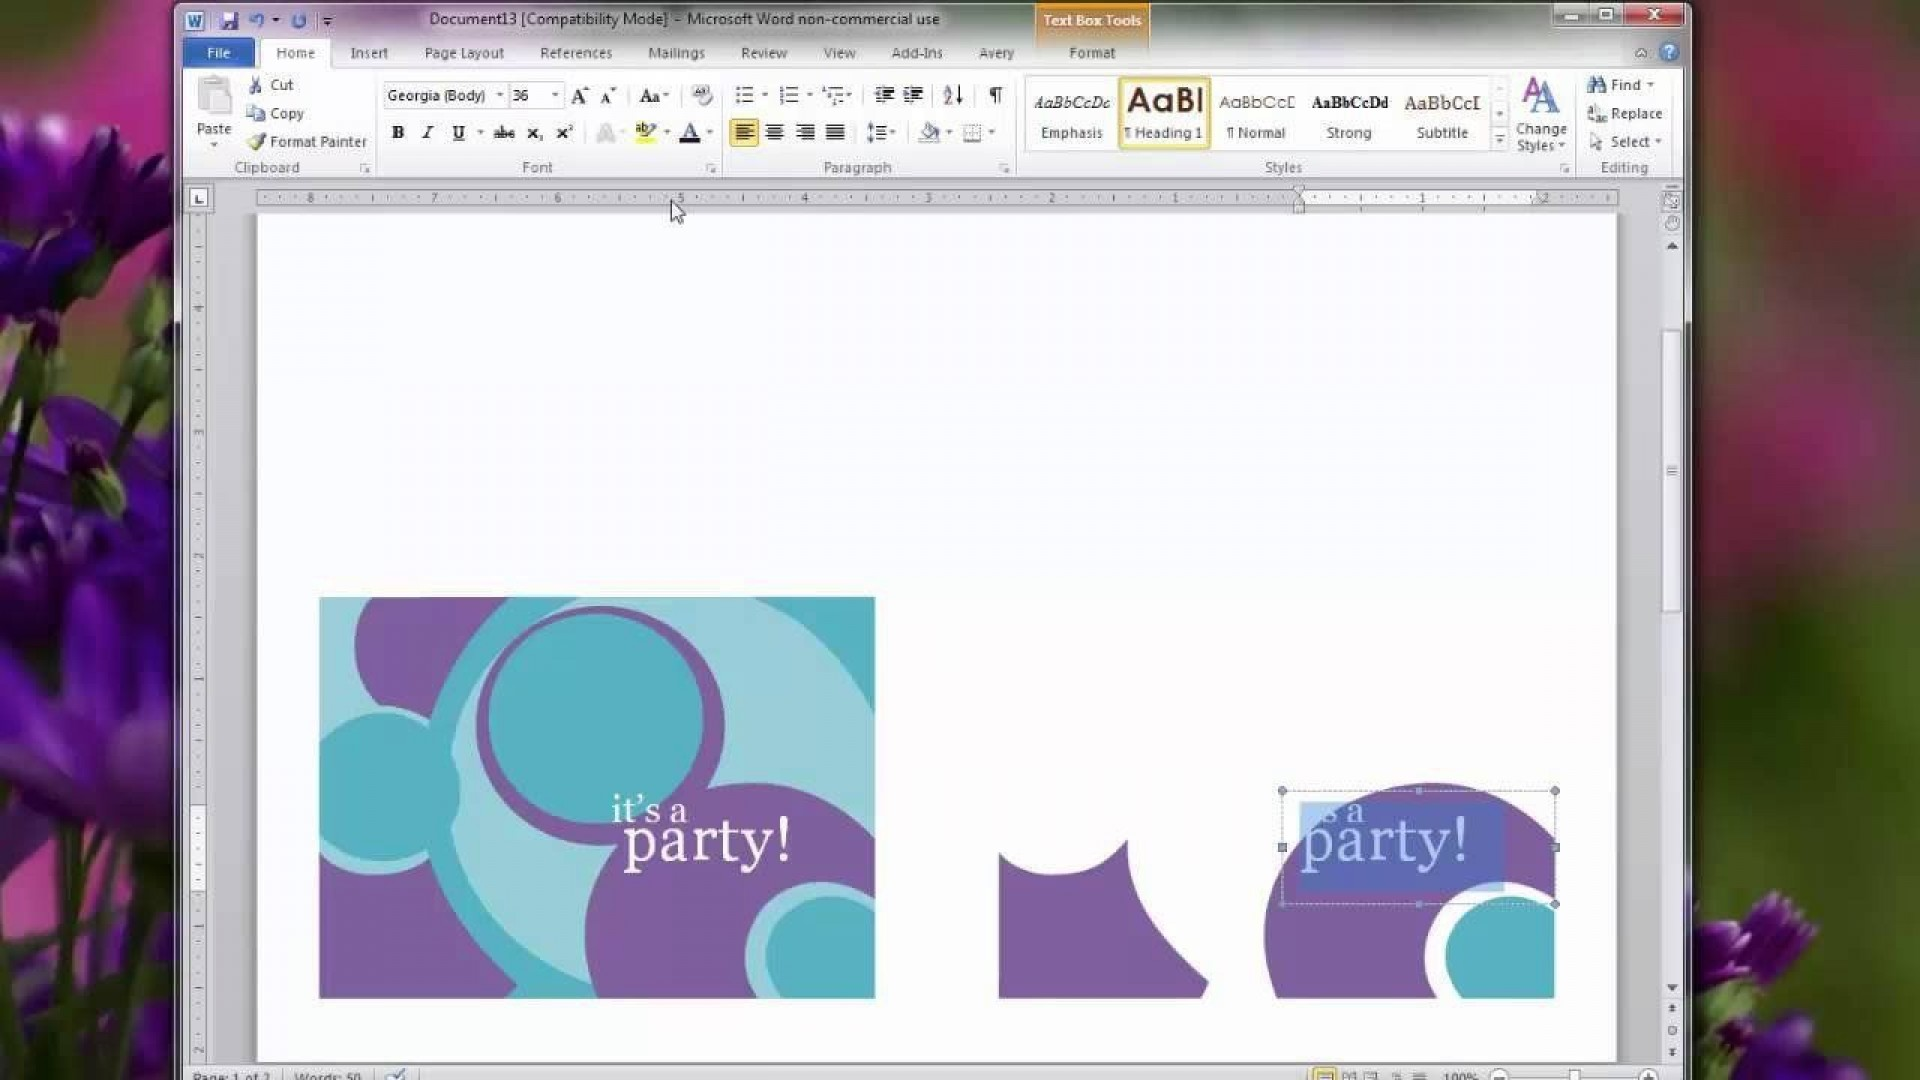 002 Amazing Birthday Card Template For Word 2010 Concept  Greeting Microsoft1920